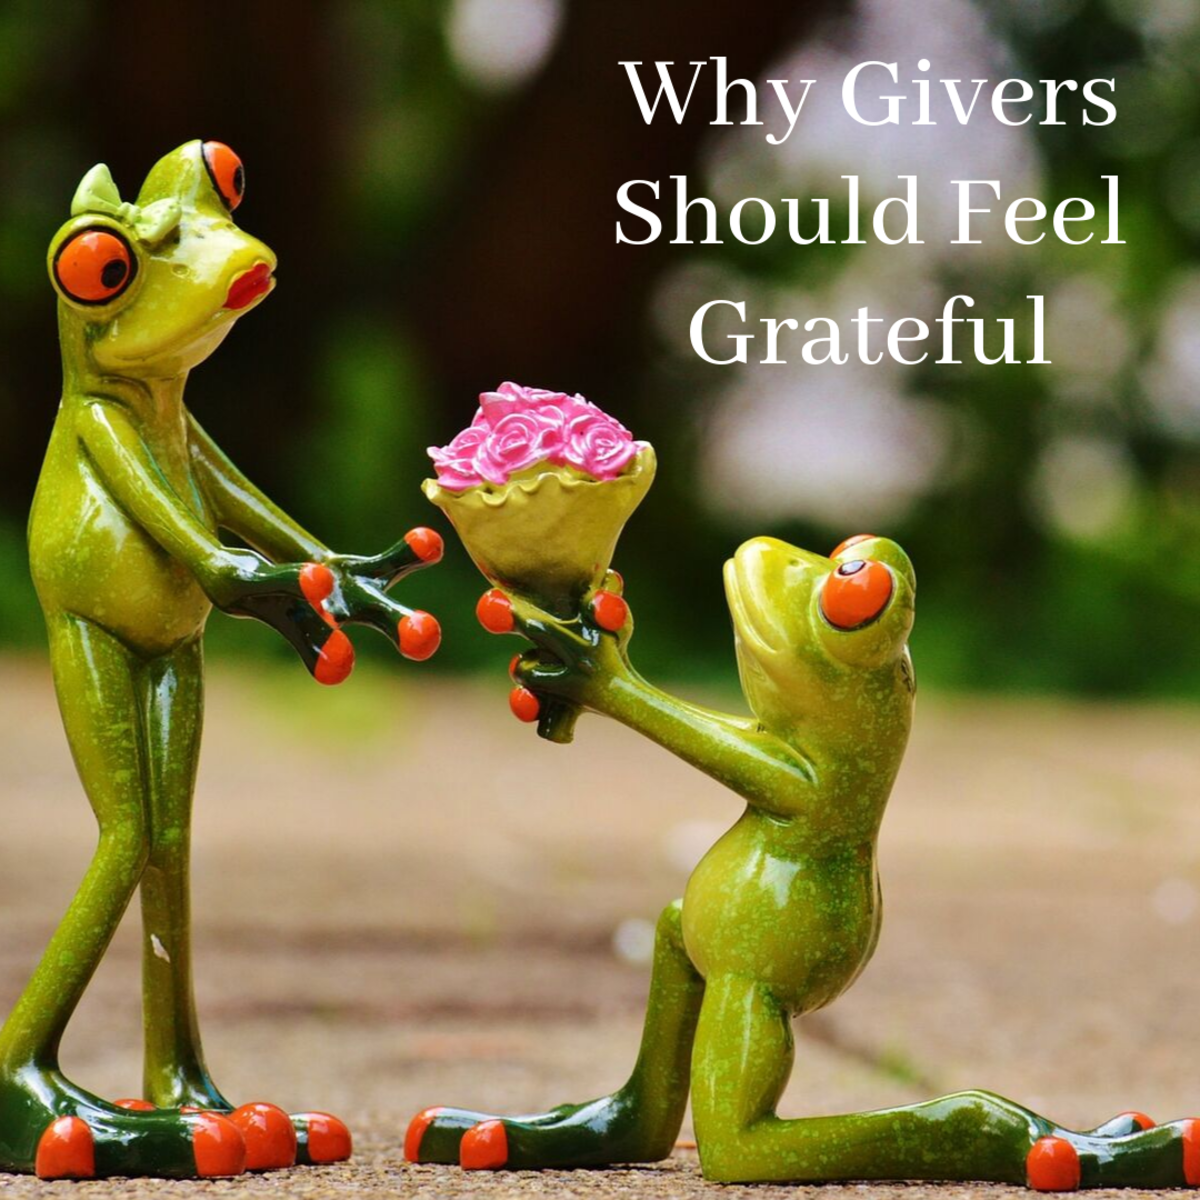 5 Reasons for Givers to Be Grateful